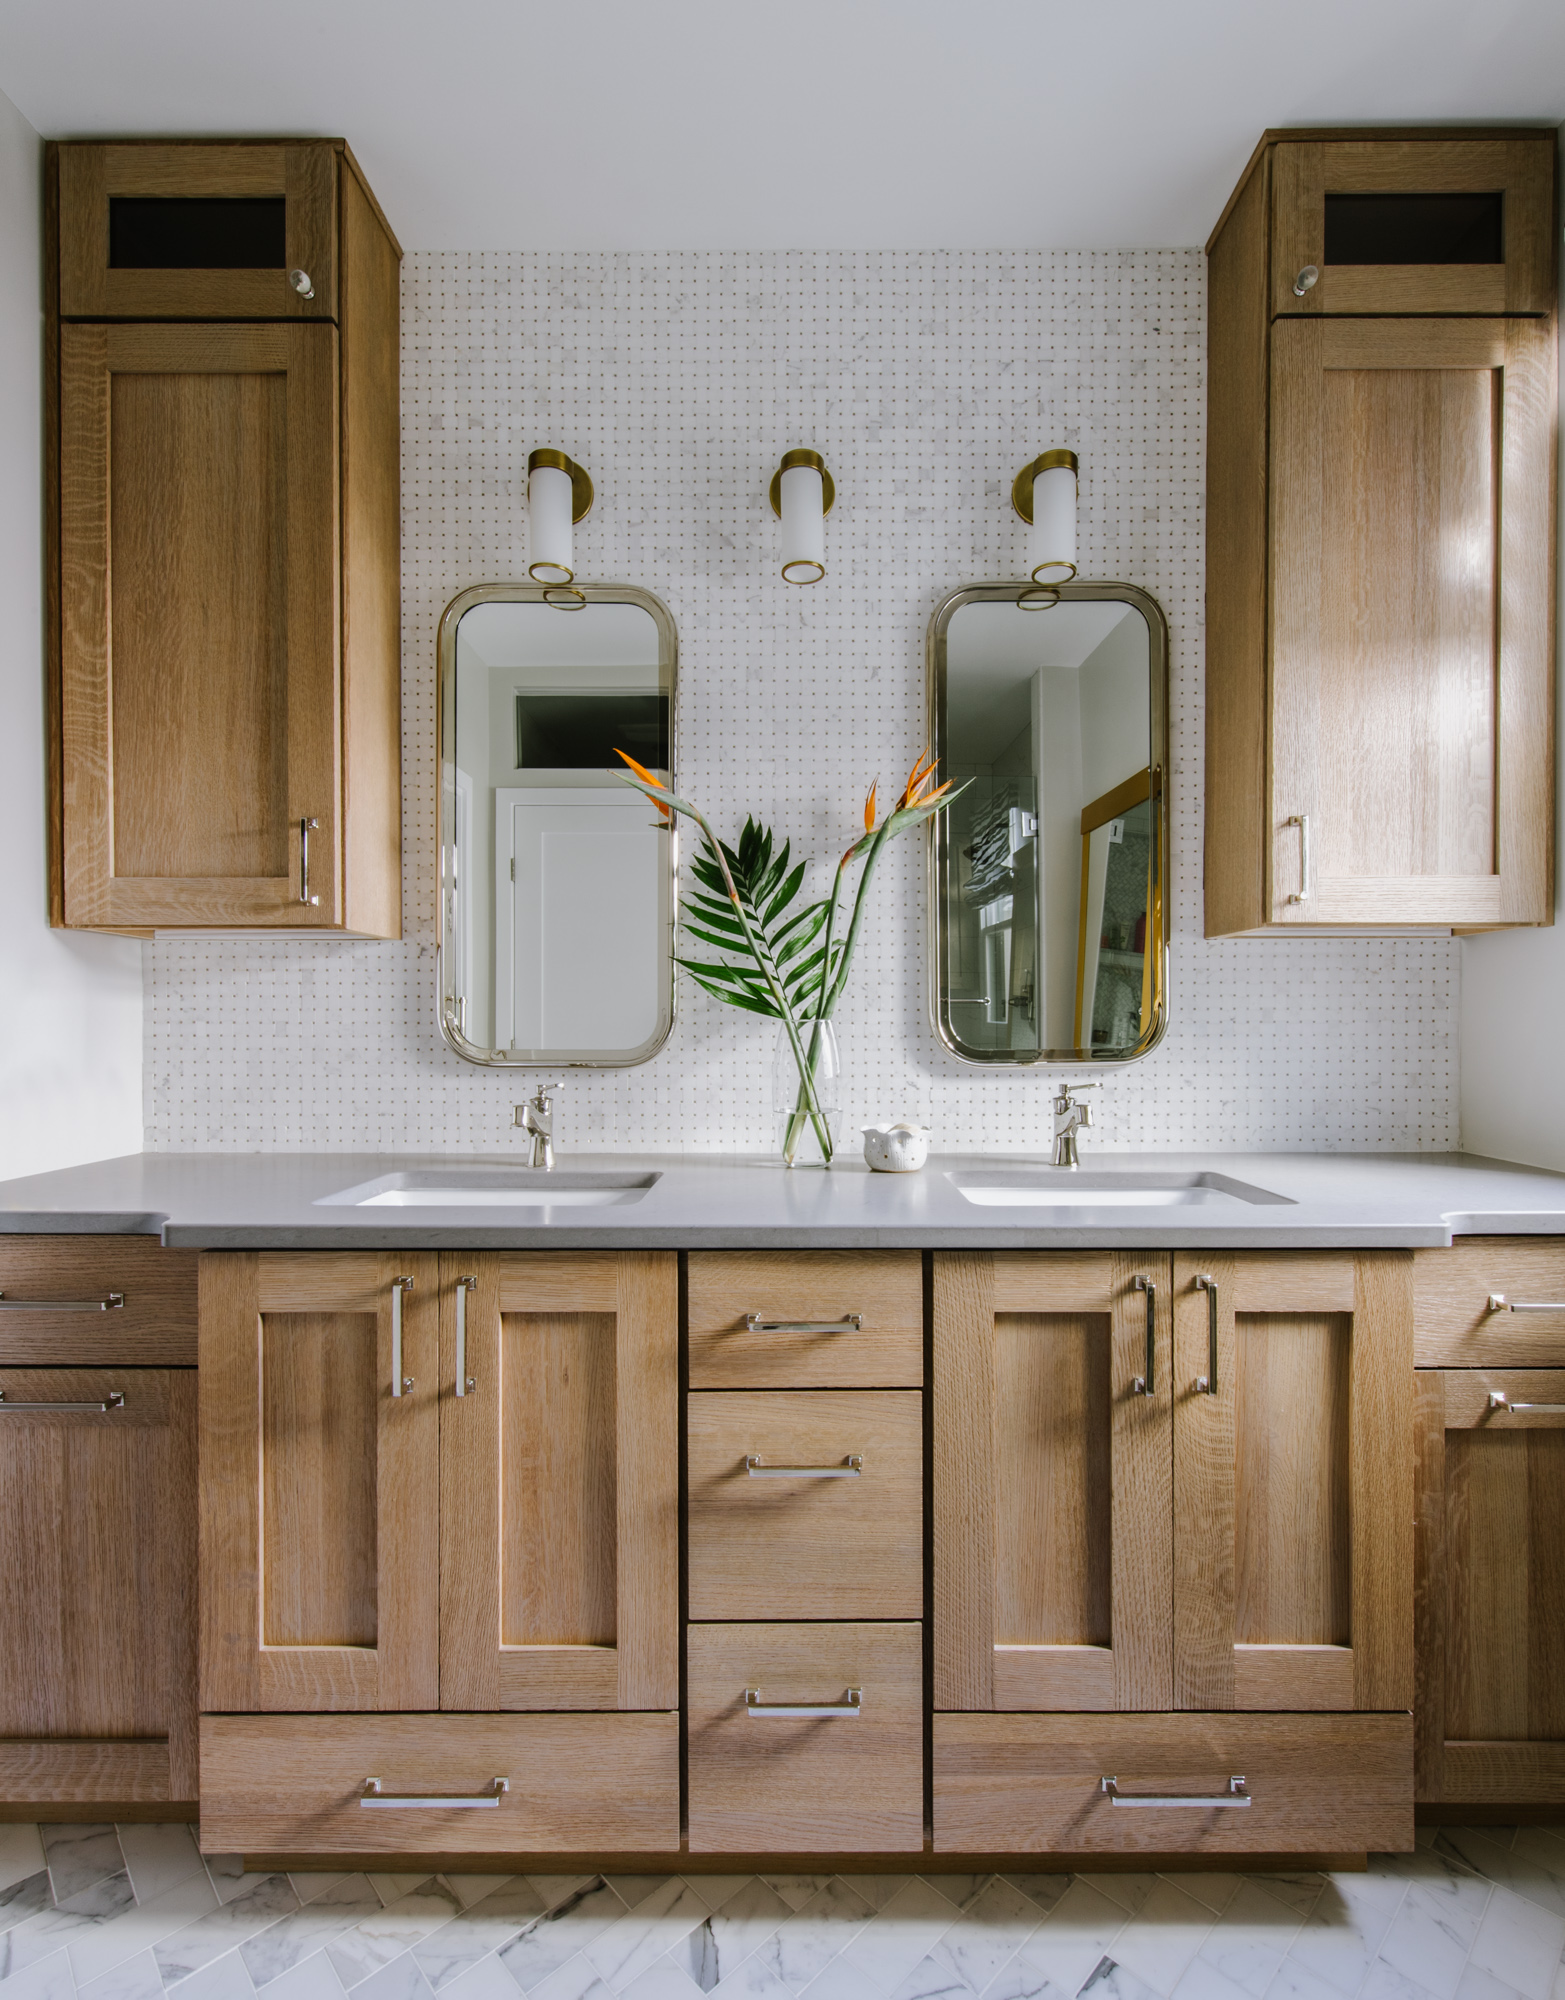 DC Master bath renovation by Alison Giese Interiors